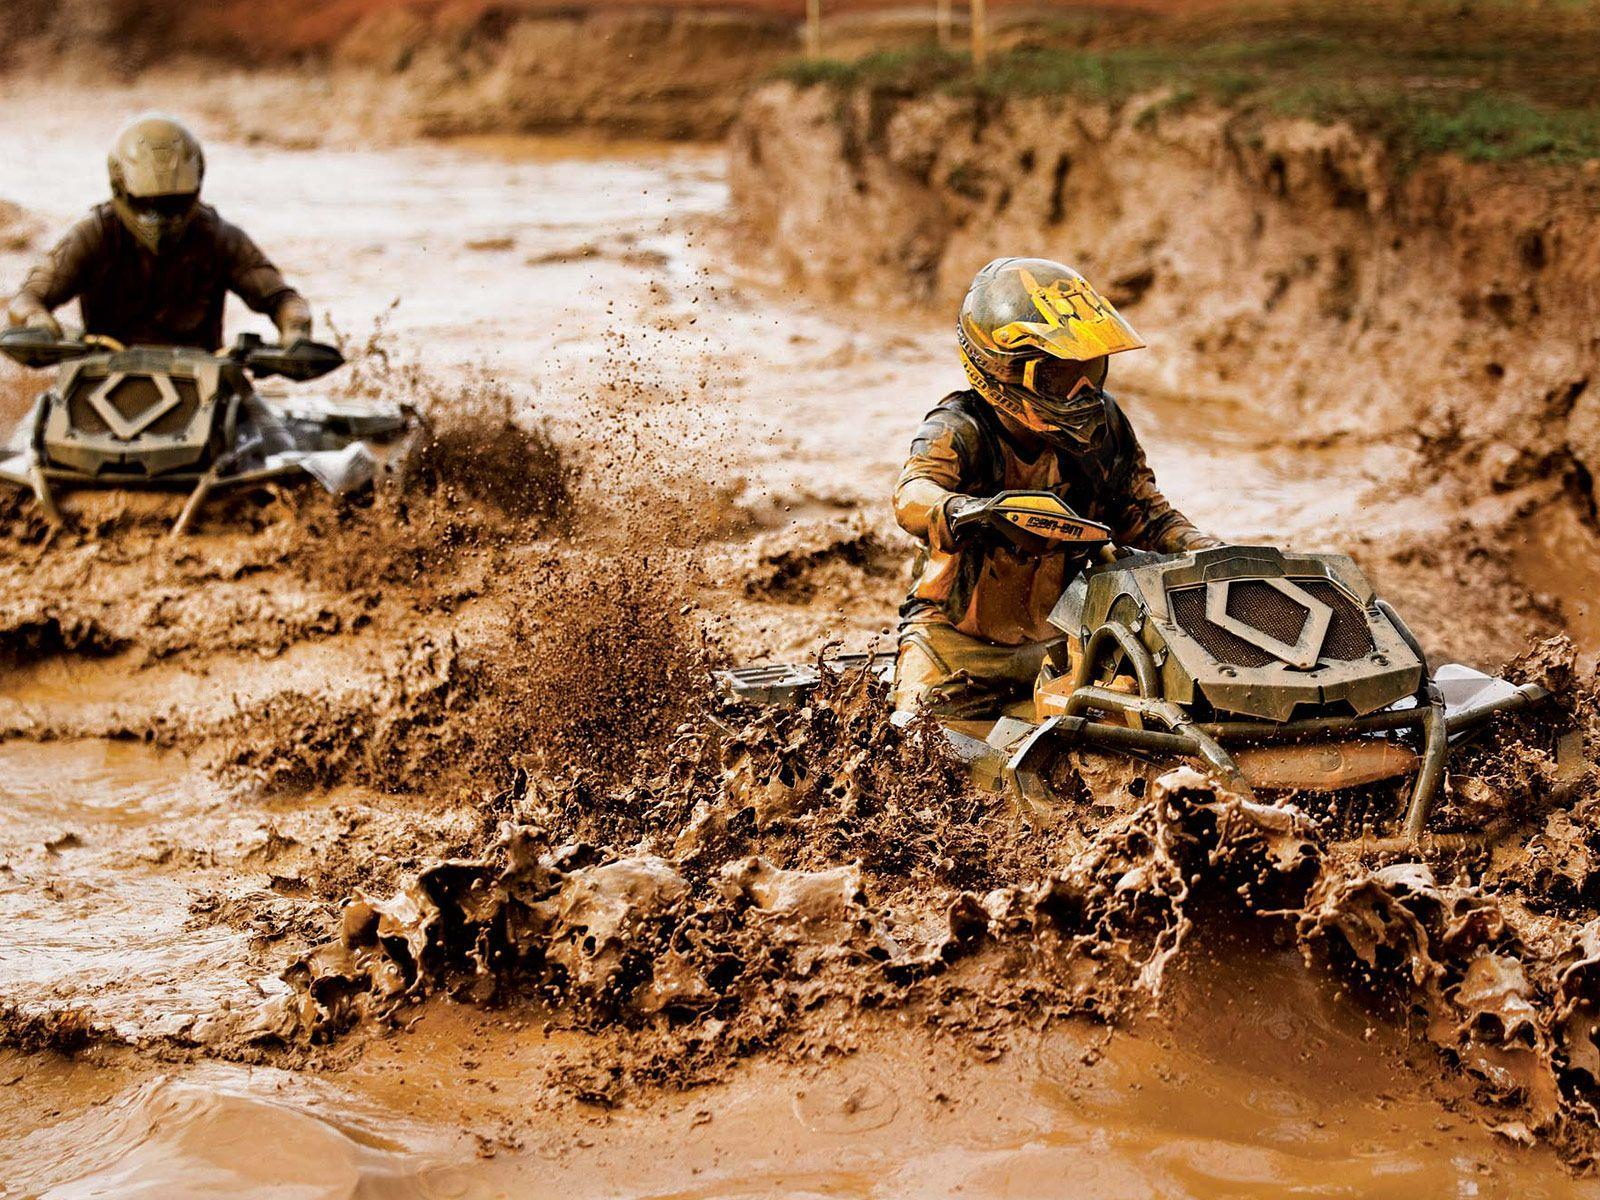 ATV Mudding Wallpapers